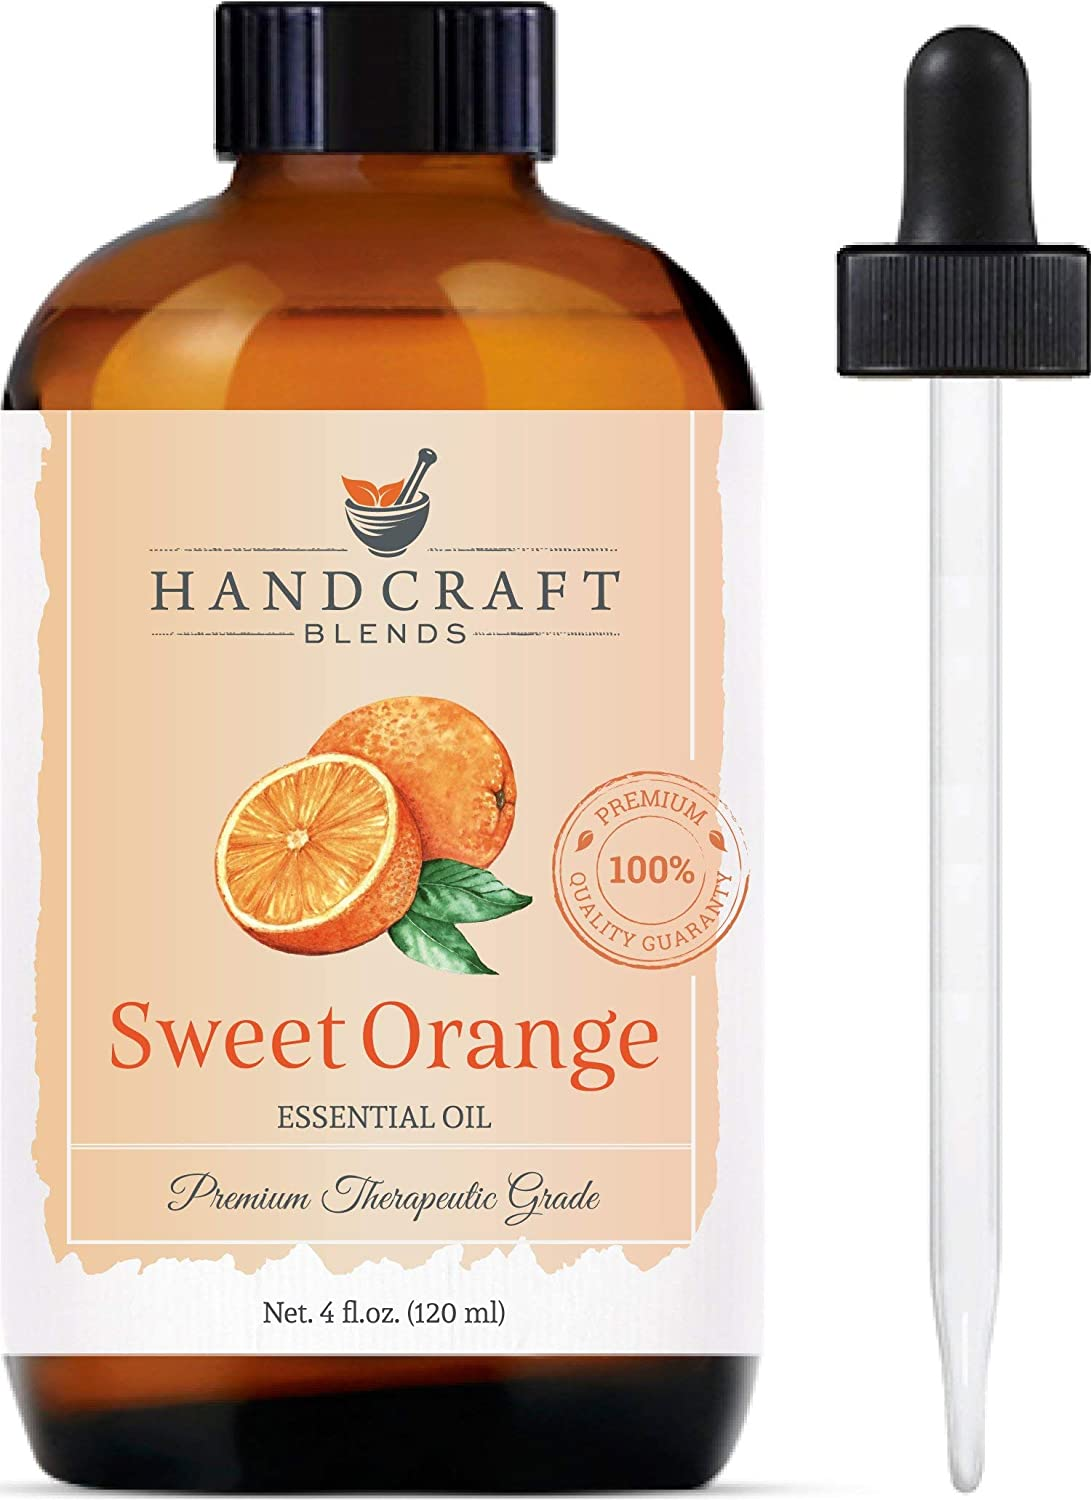 Sweet Orange Essential Oil - 100% Pure and Natural